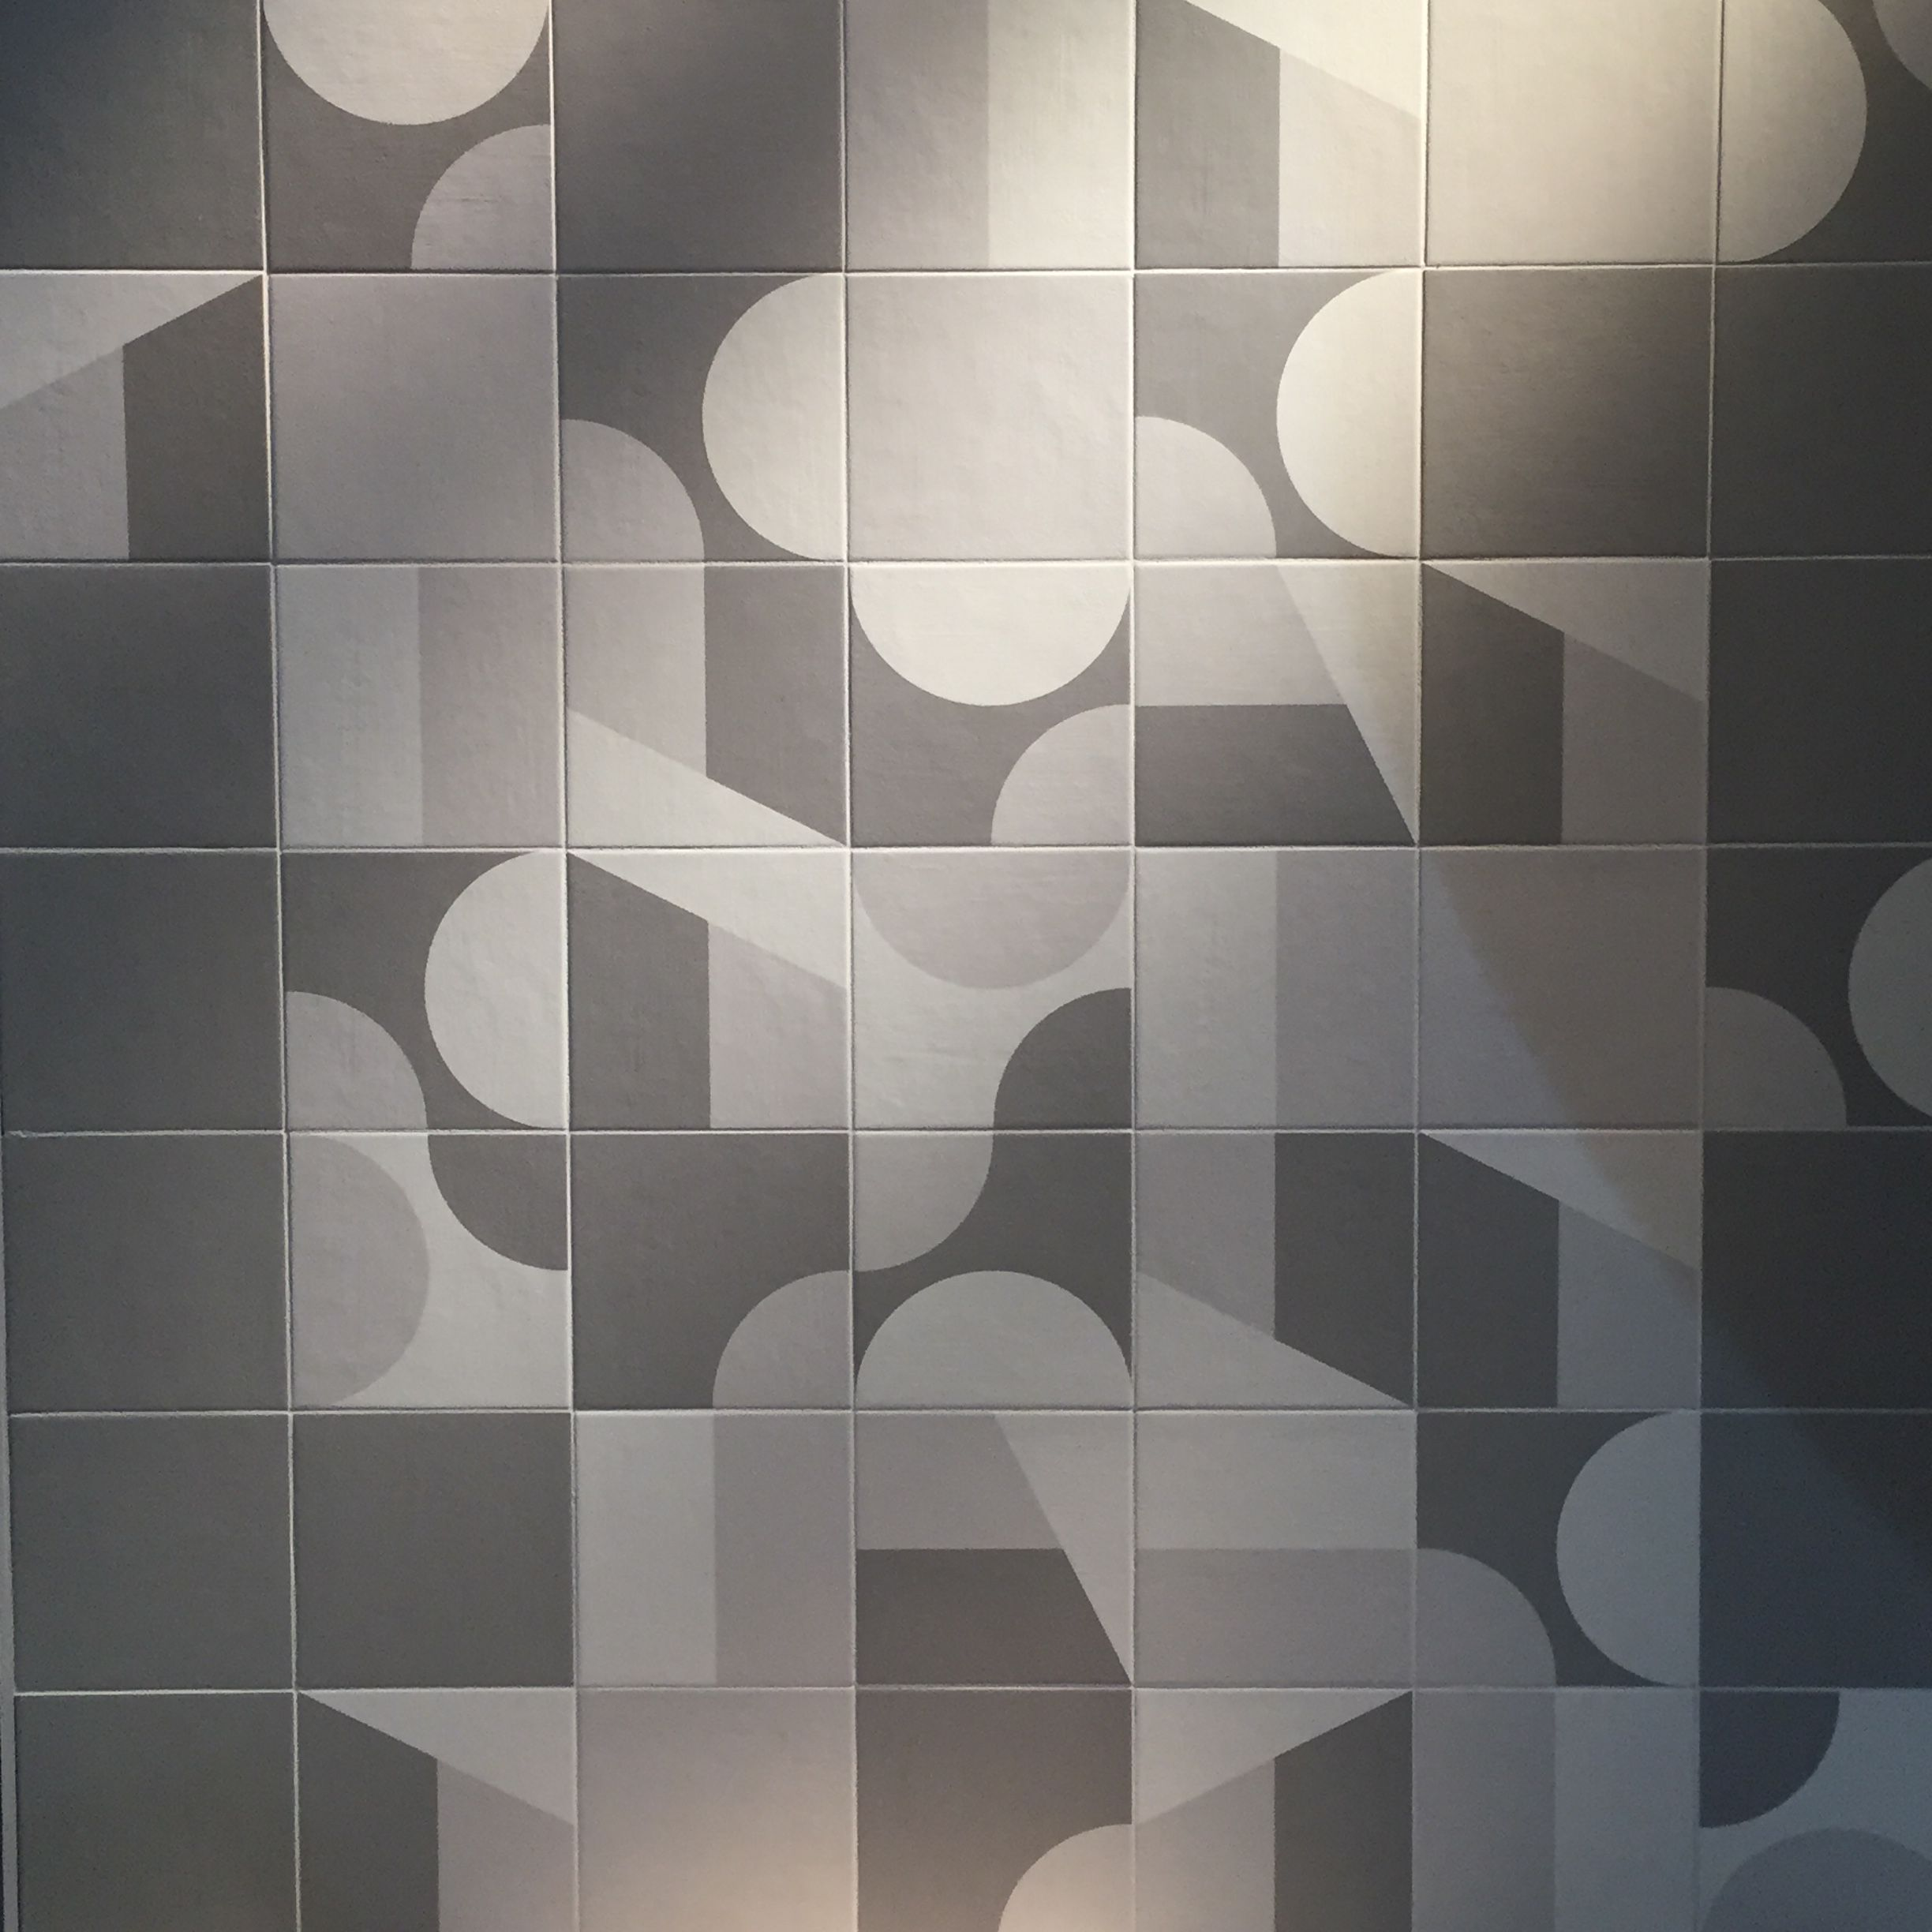 Image result for mutina puzzle tiles pinterest image result for mutina puzzle dailygadgetfo Choice Image